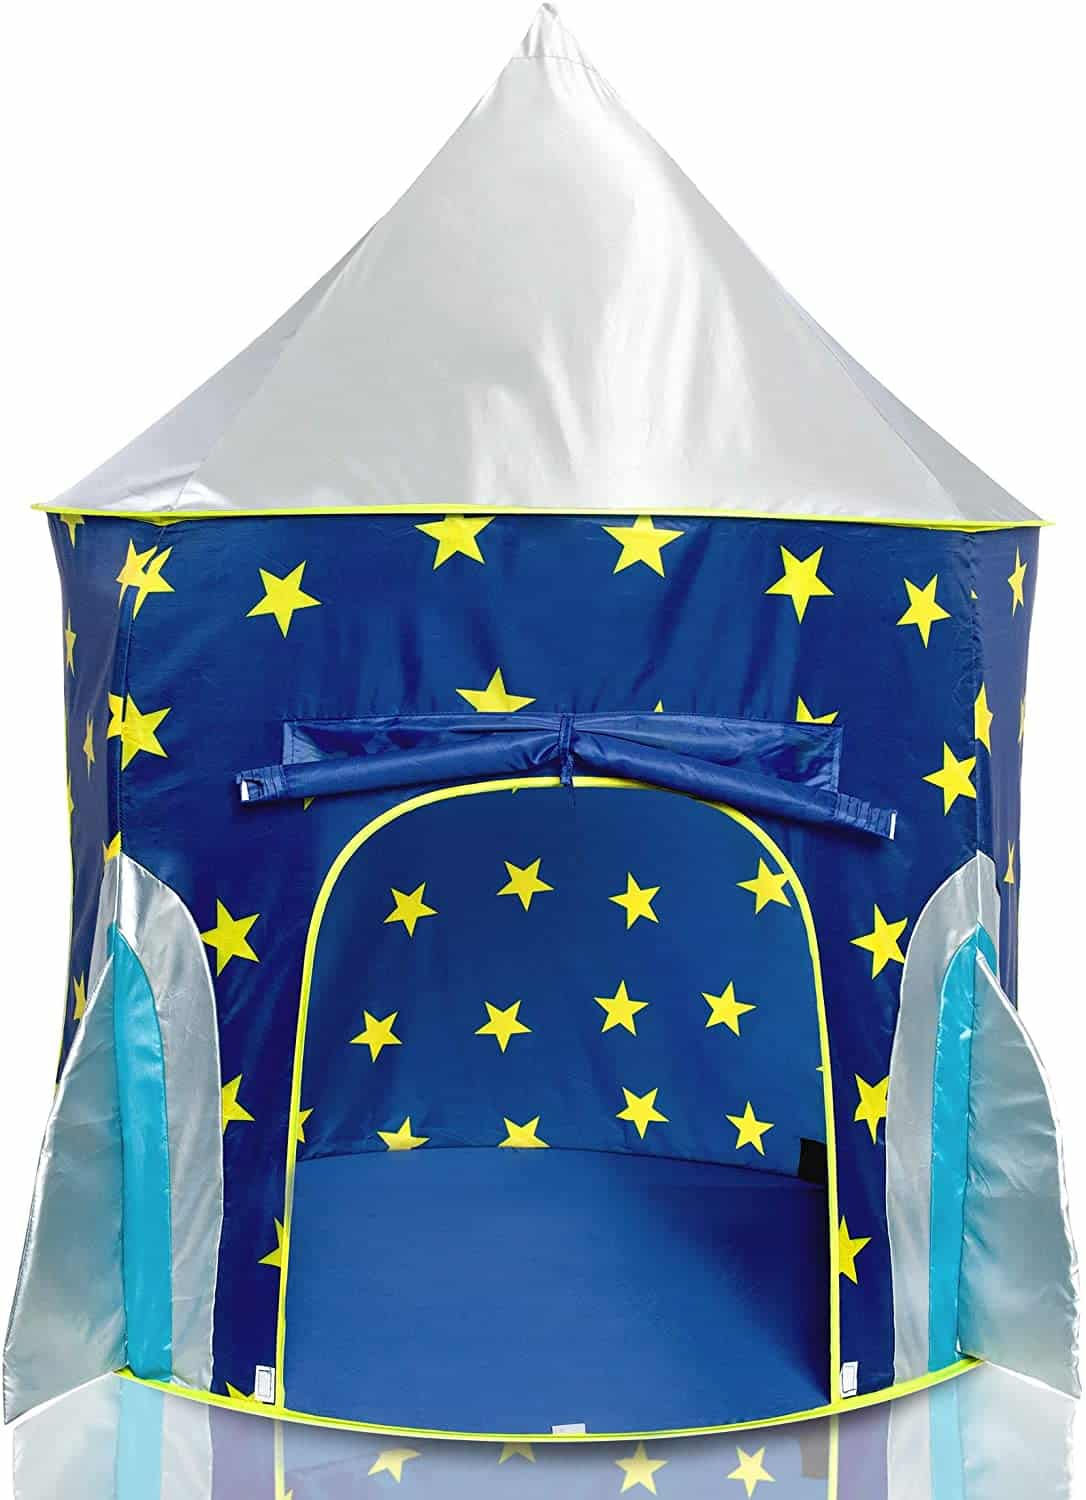 USA Toyz Play Tent for Boys or Girls